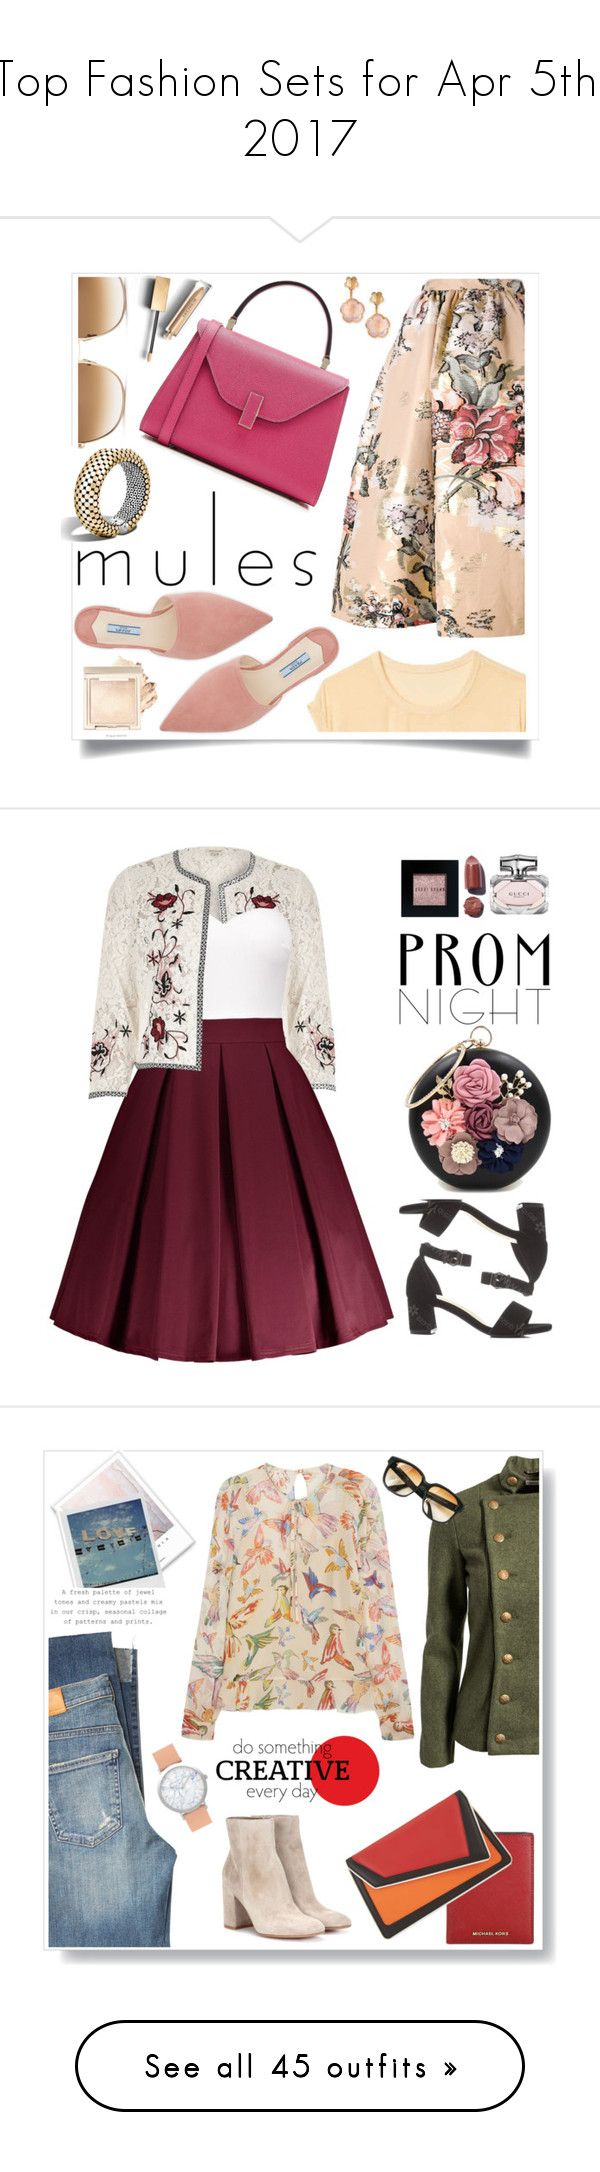 """Top Fashion Sets for Apr 5th, 2017"" by polyvore ❤ liked on Polyvore featuring Fendi, John Hardy, Gap, Valextra, Chloé, Prada, Pasquale Bruni, Burberry, River Island and Bobbi Brown Cosmetics"